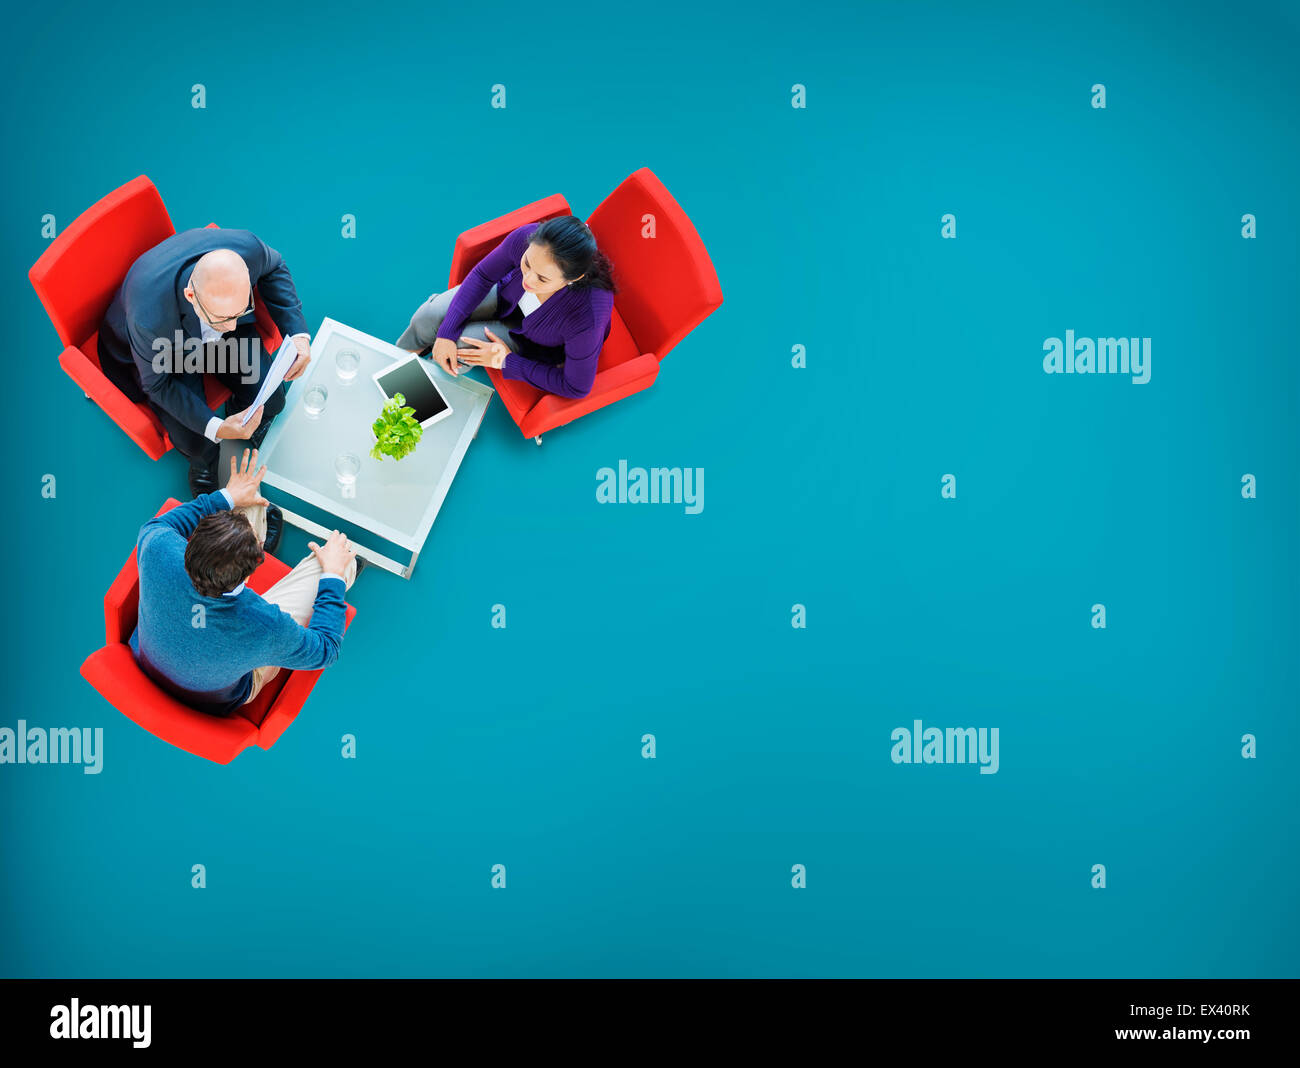 Brainstorming Planning Strategy Teamwork Collaboration Concept - Stock Image